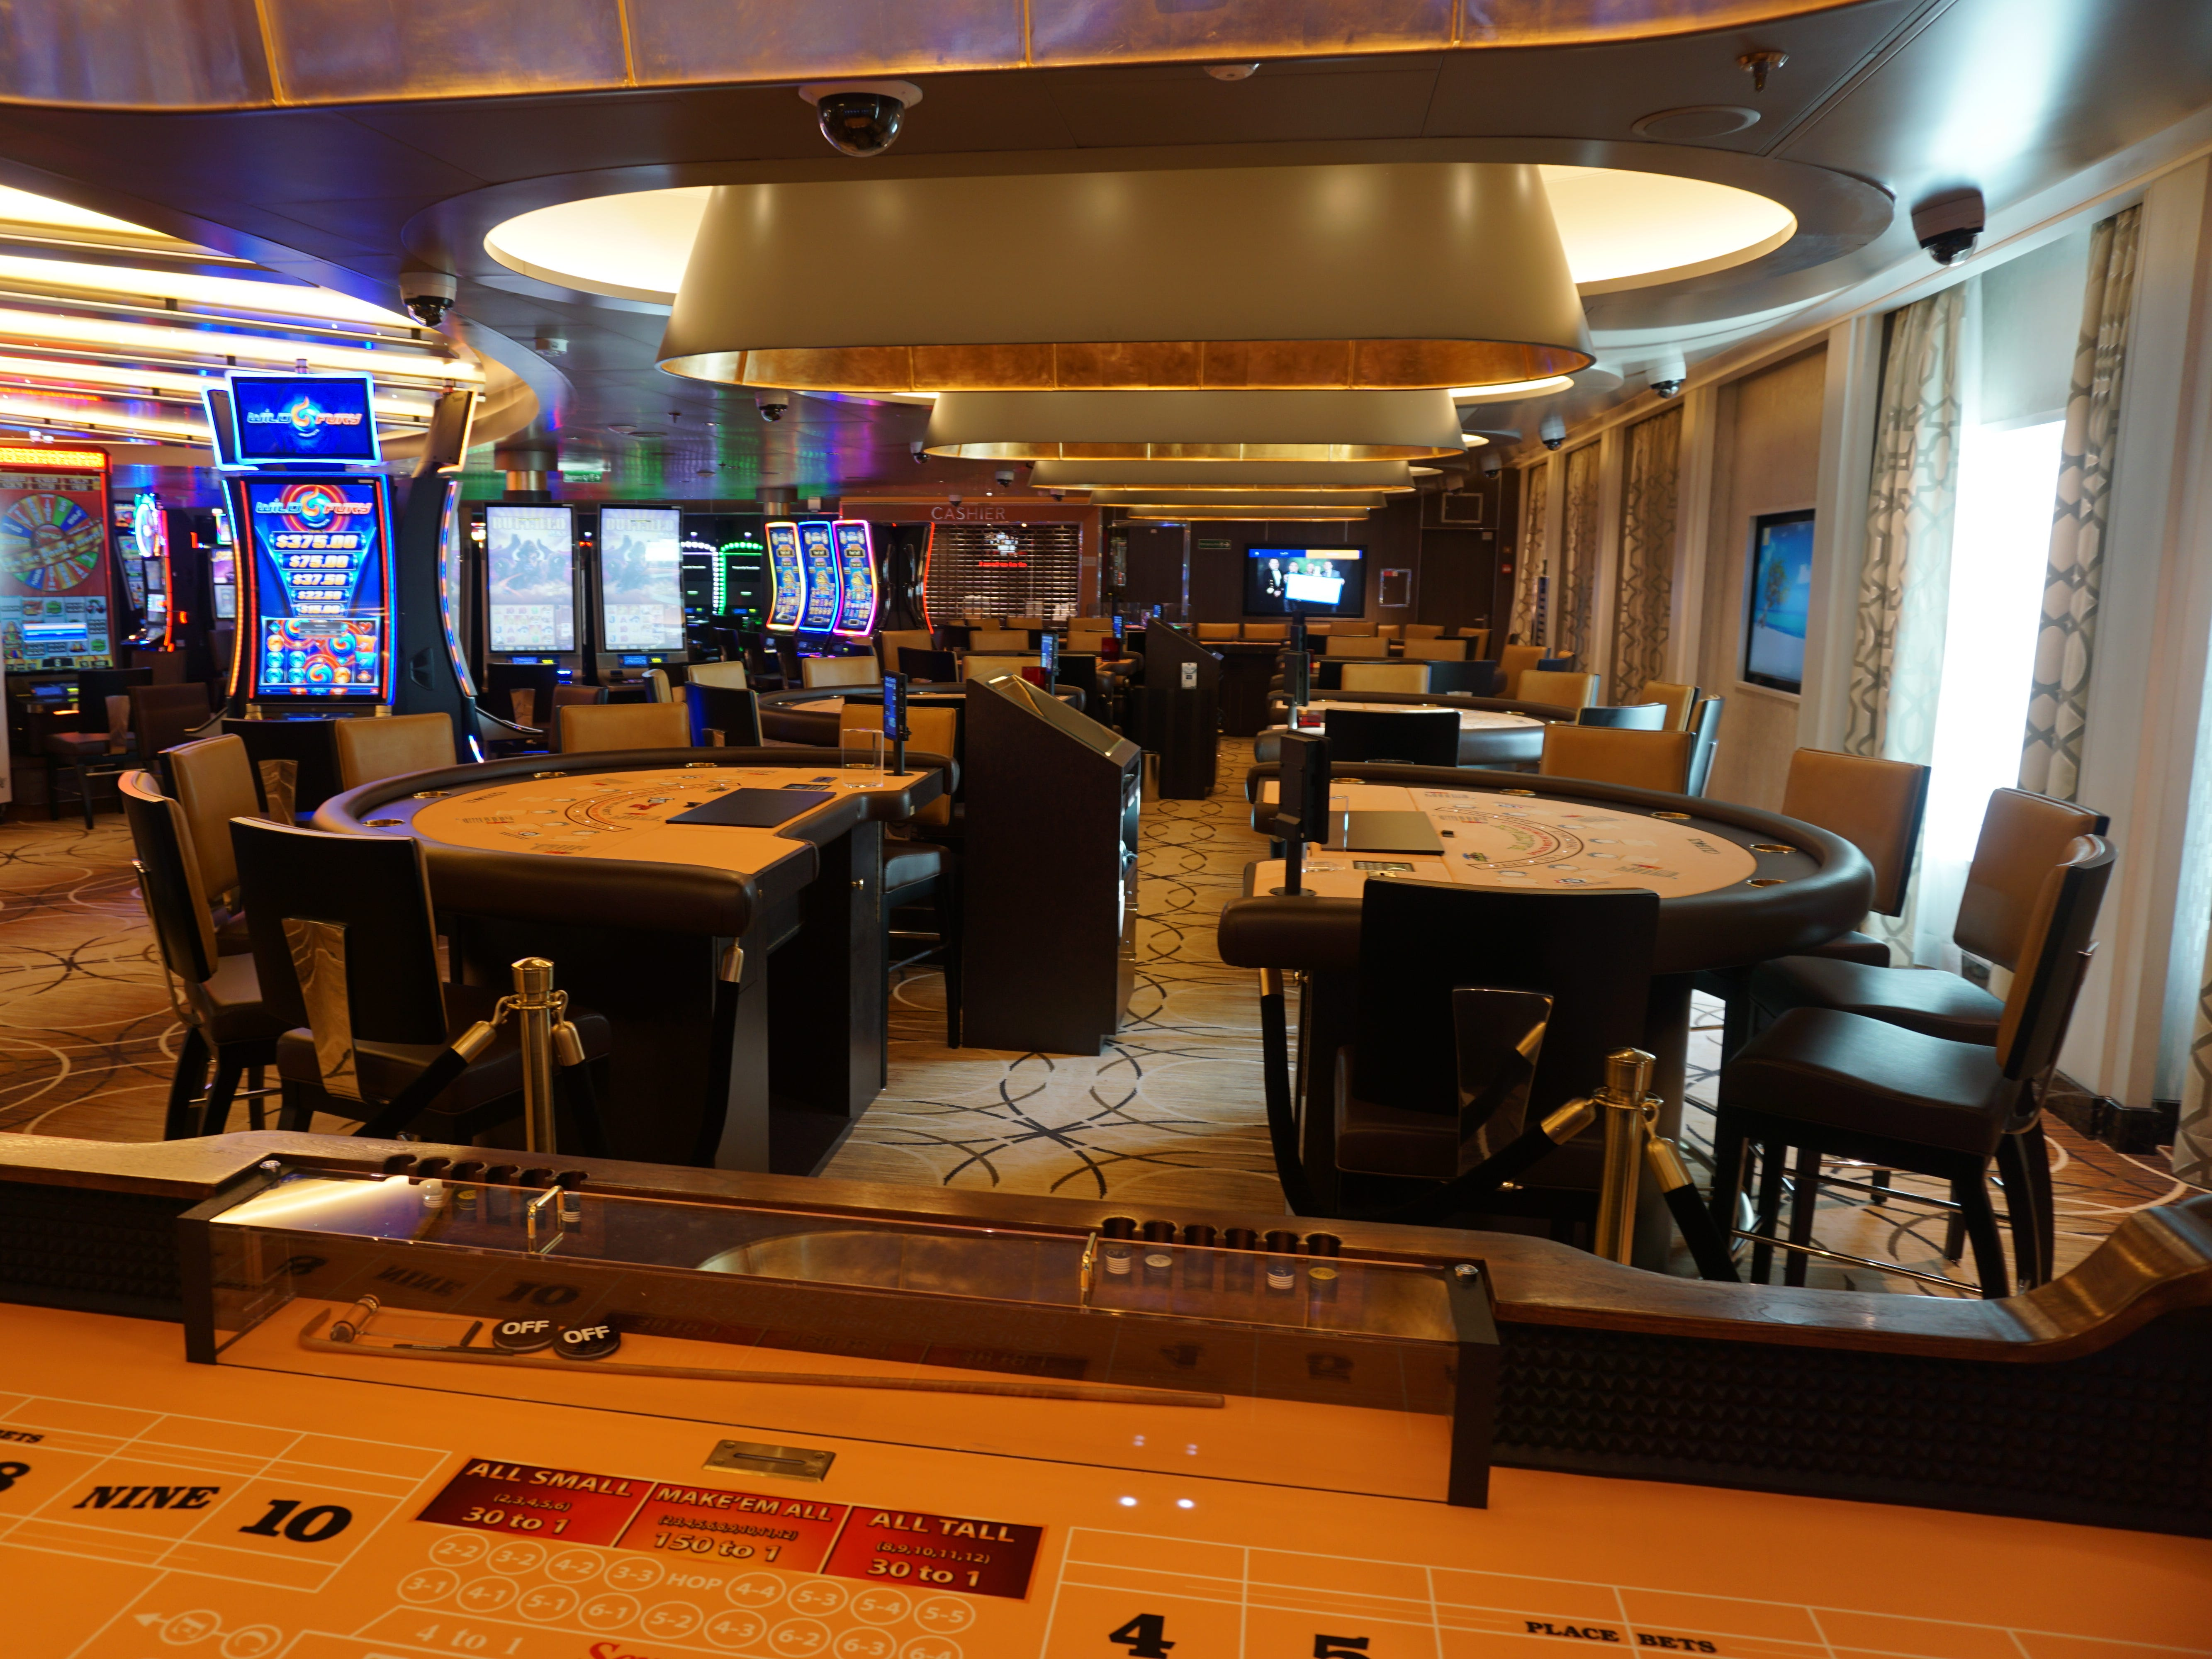 The Casino has slots in addition to roulette, poker, blackjack and other gaming tables.